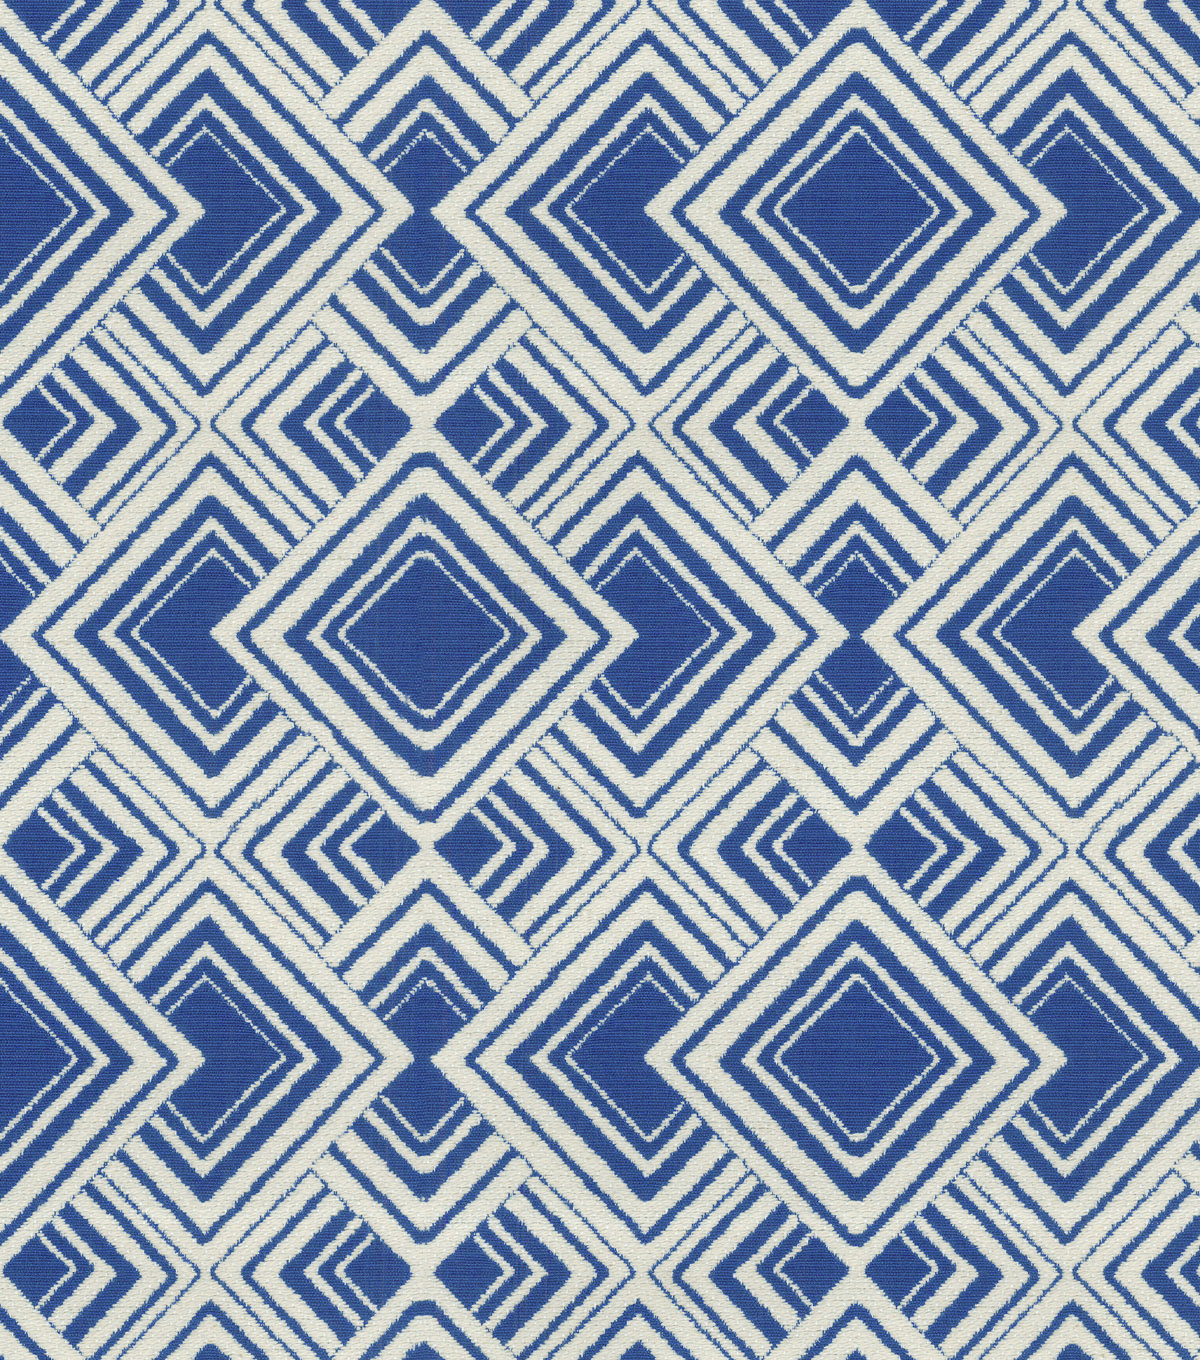 HGTV Home Upholstery Fabric-Diamond Reps/Cobalt